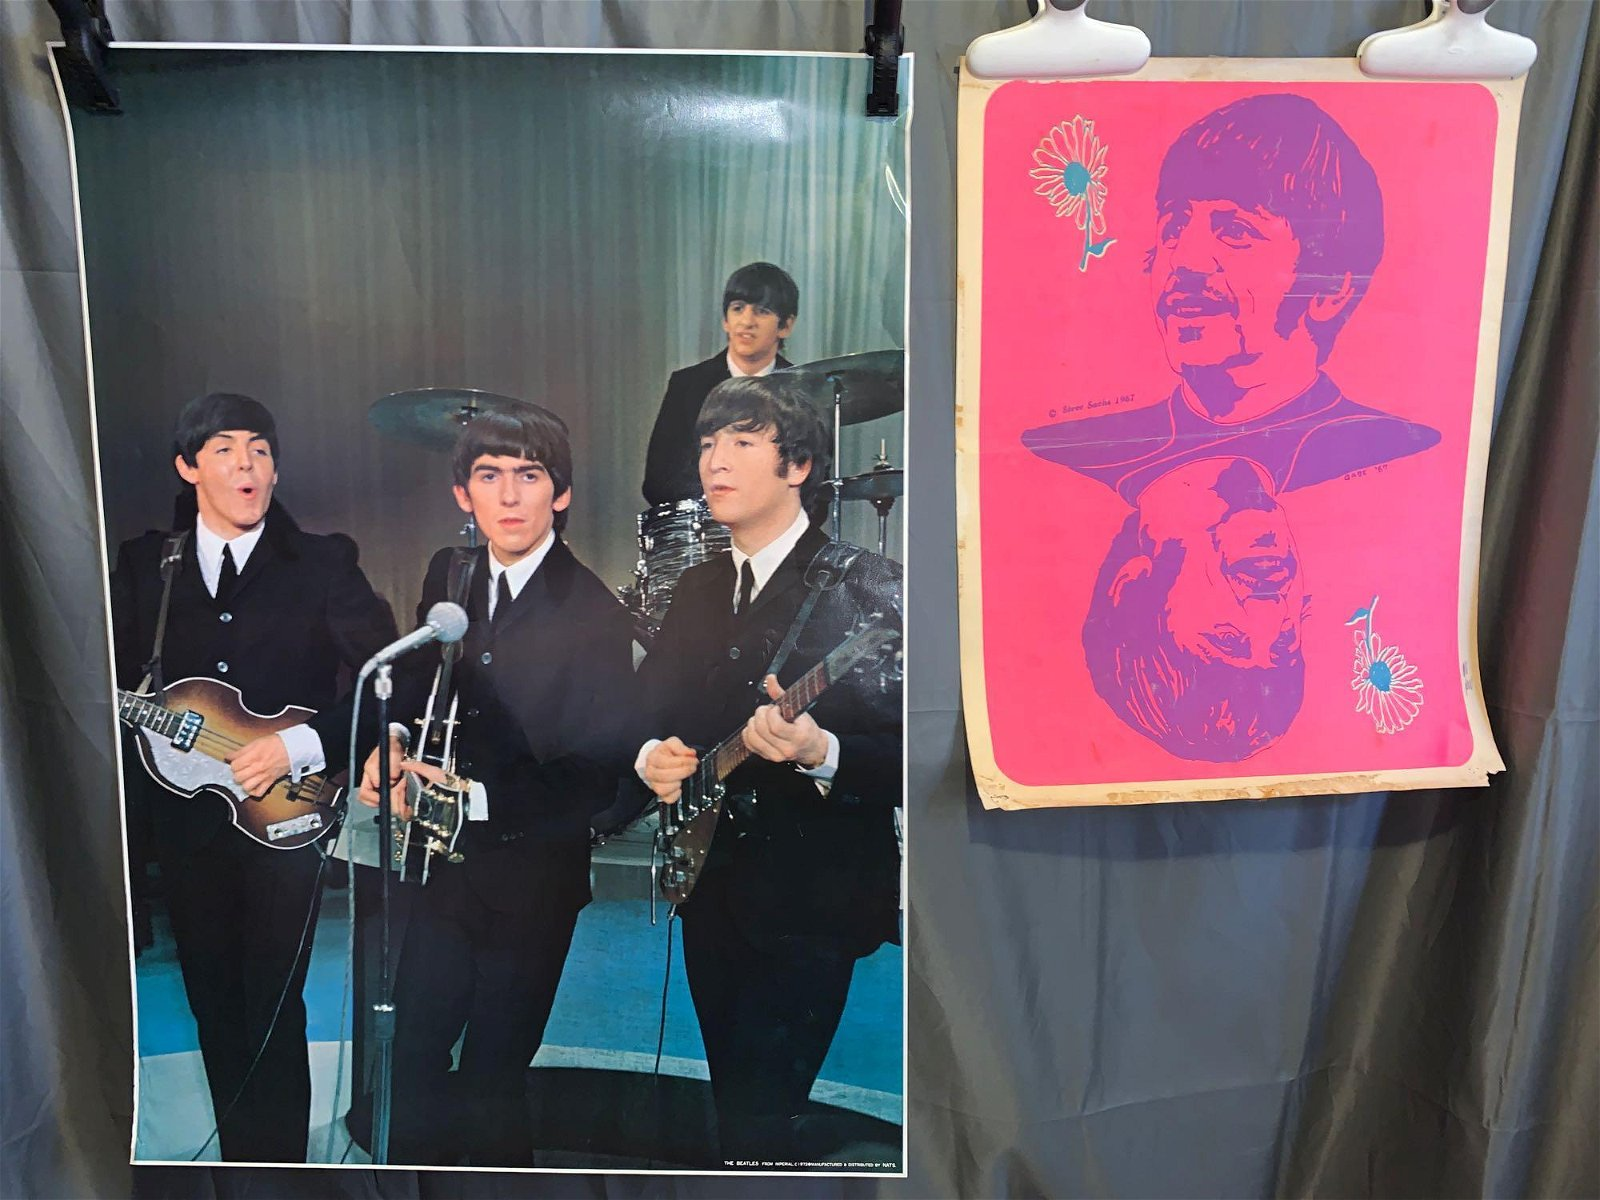 Two Posters: Beatles and Ringo Starr